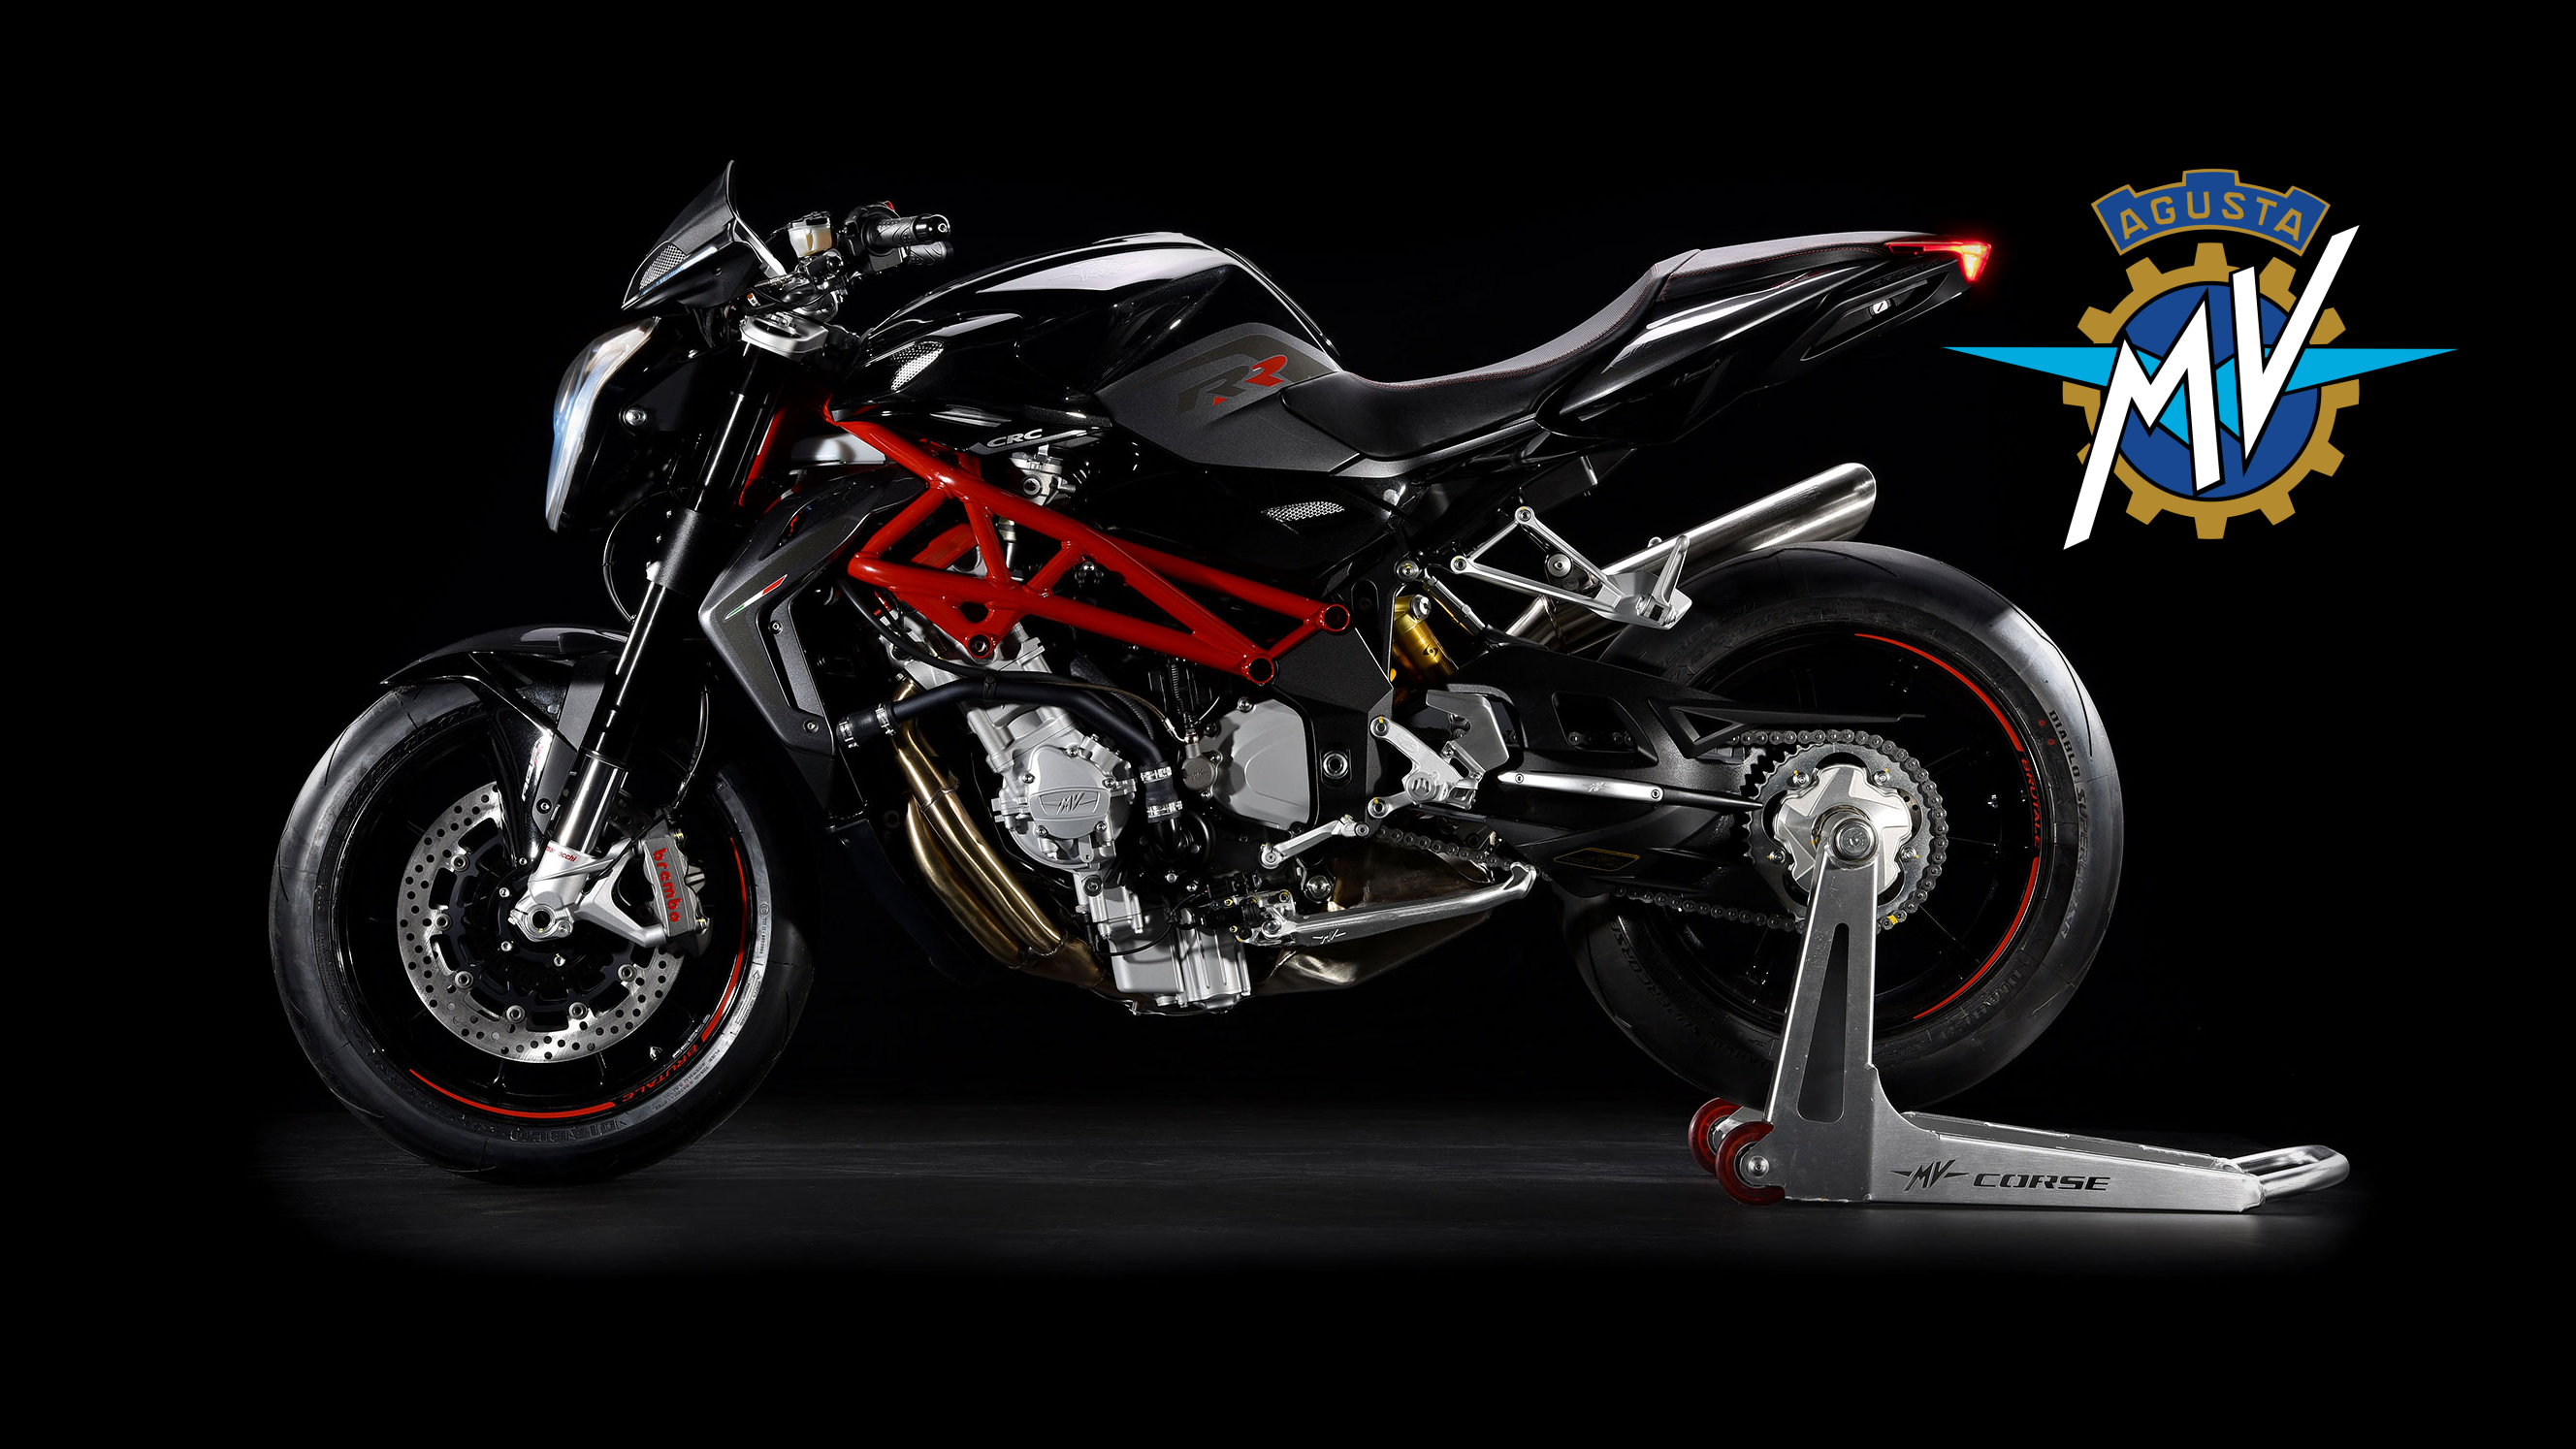 2015 - 2017 mv agusta brutale 1090 rr pictures, photos, wallpapers